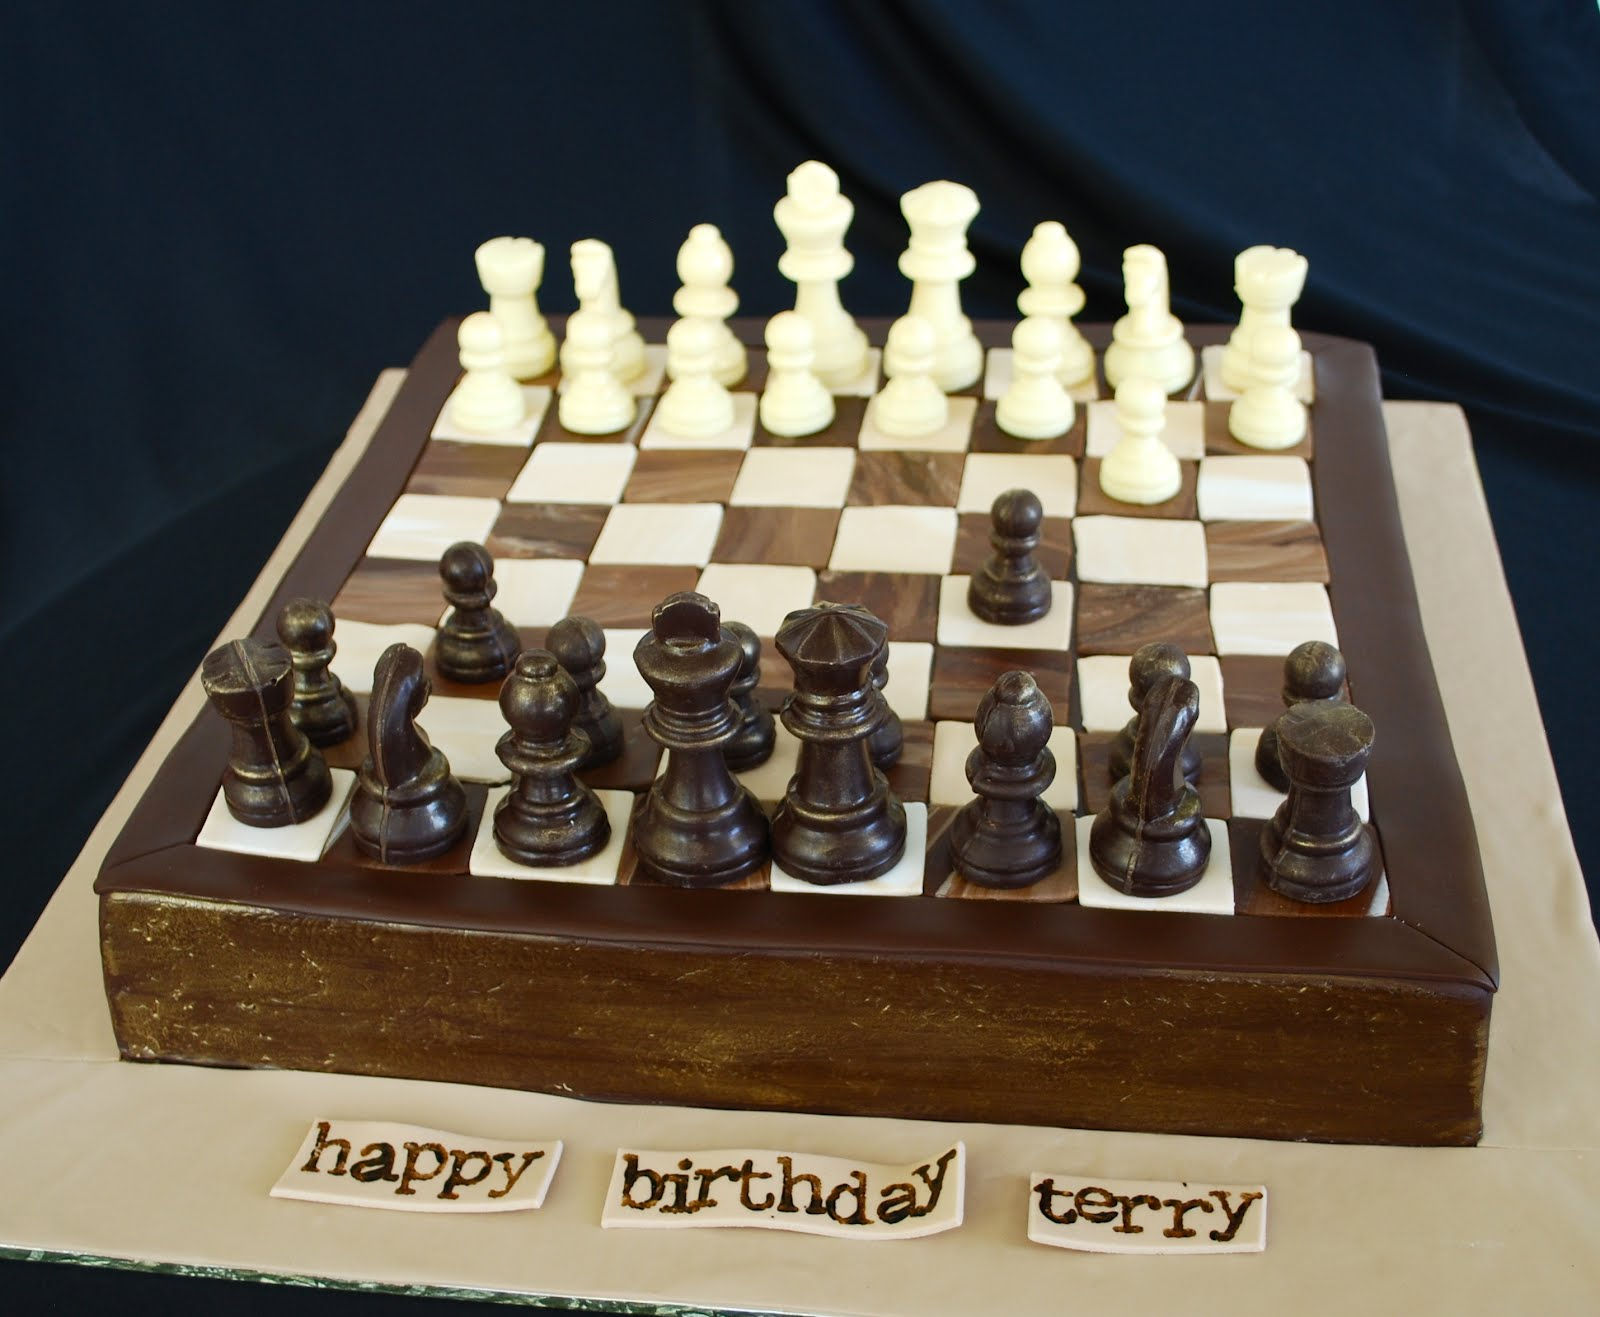 The Beehive Chess Board Cake